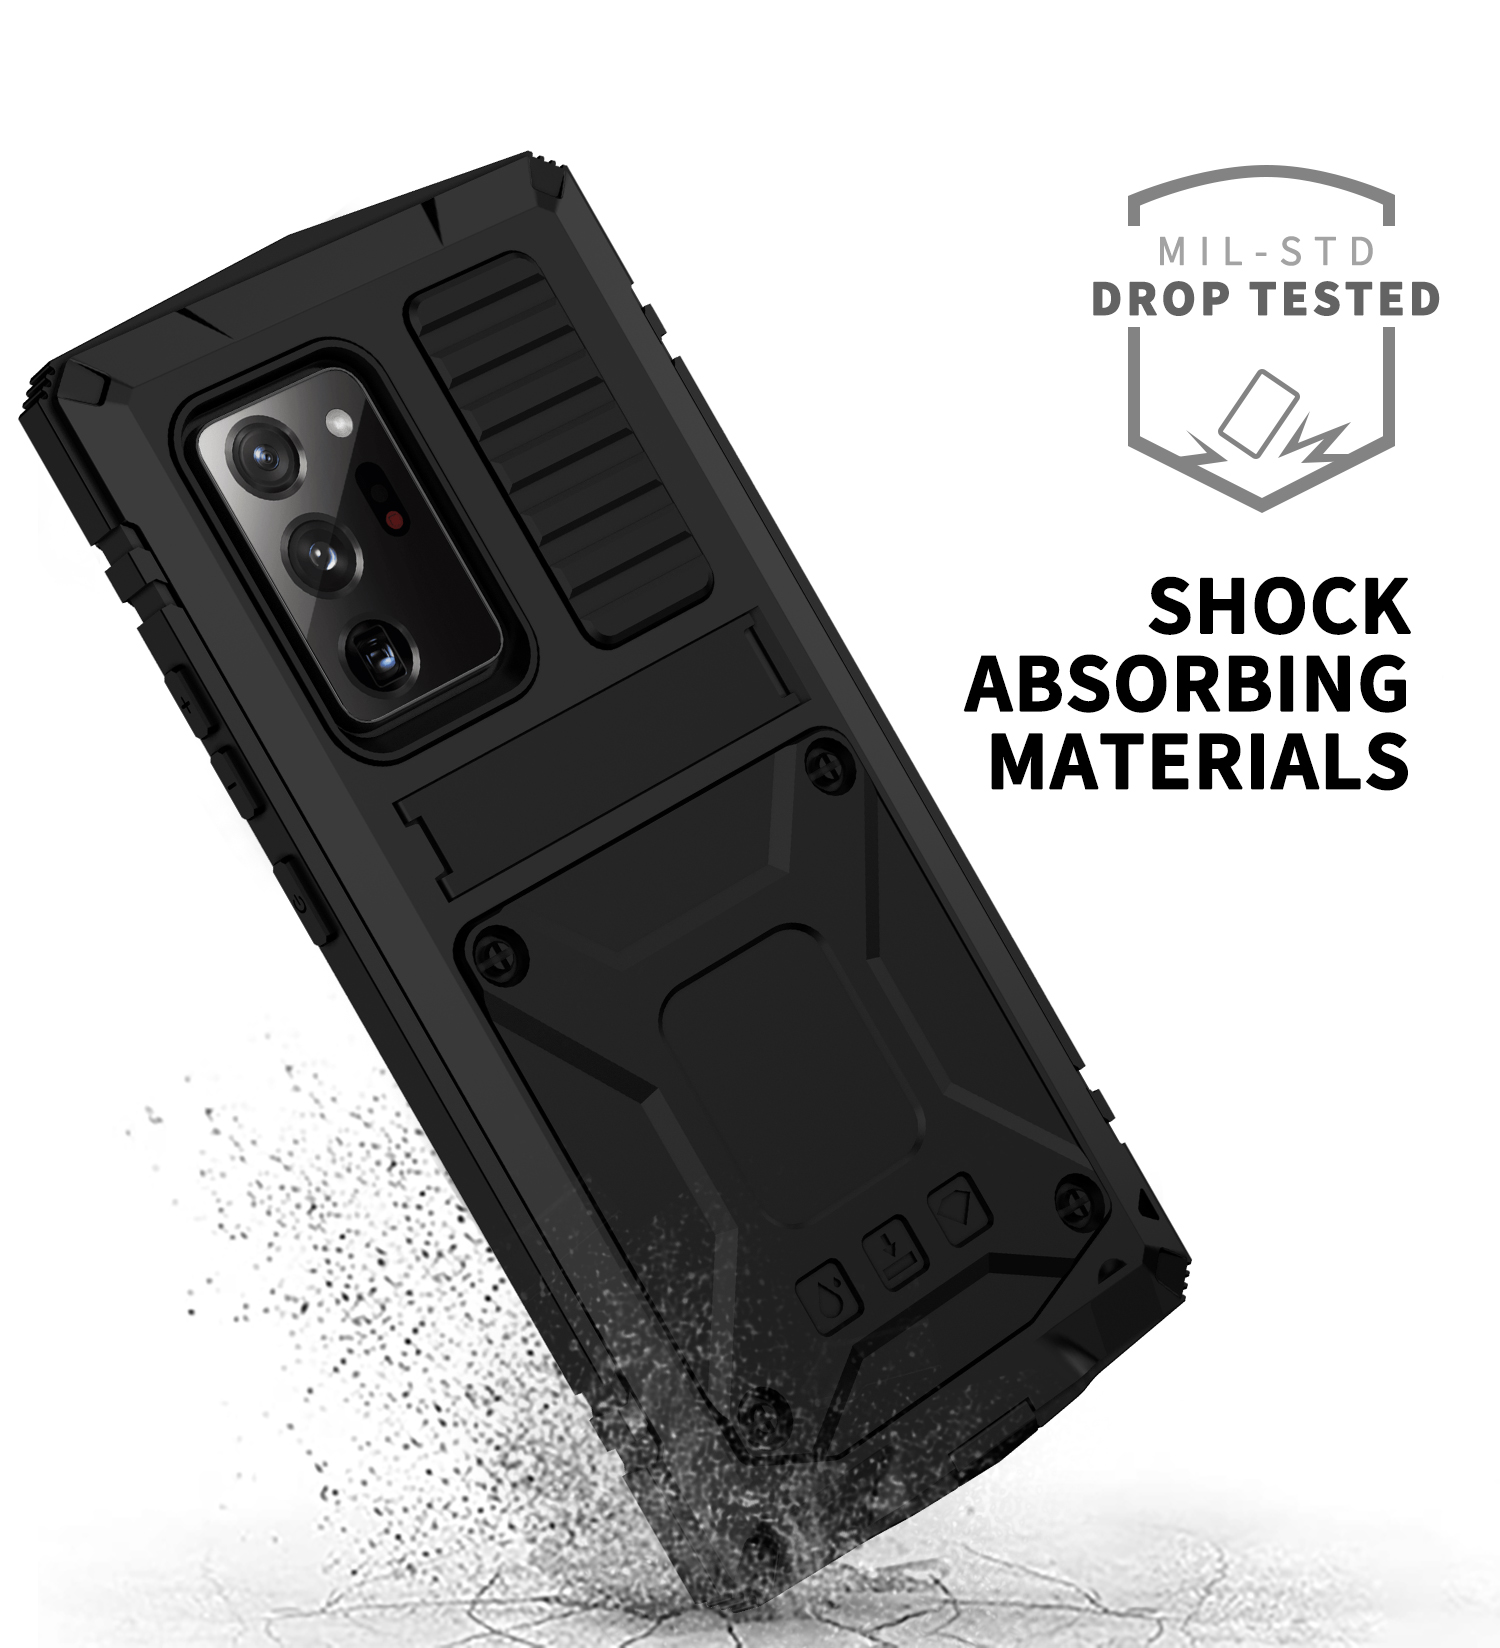 With Bracket+Full Protective For Samsung S21 Plus Ultra A52 A72 Note 20 Ultra 5G Case Kickstand Dual Layer Protective Shockproof 3